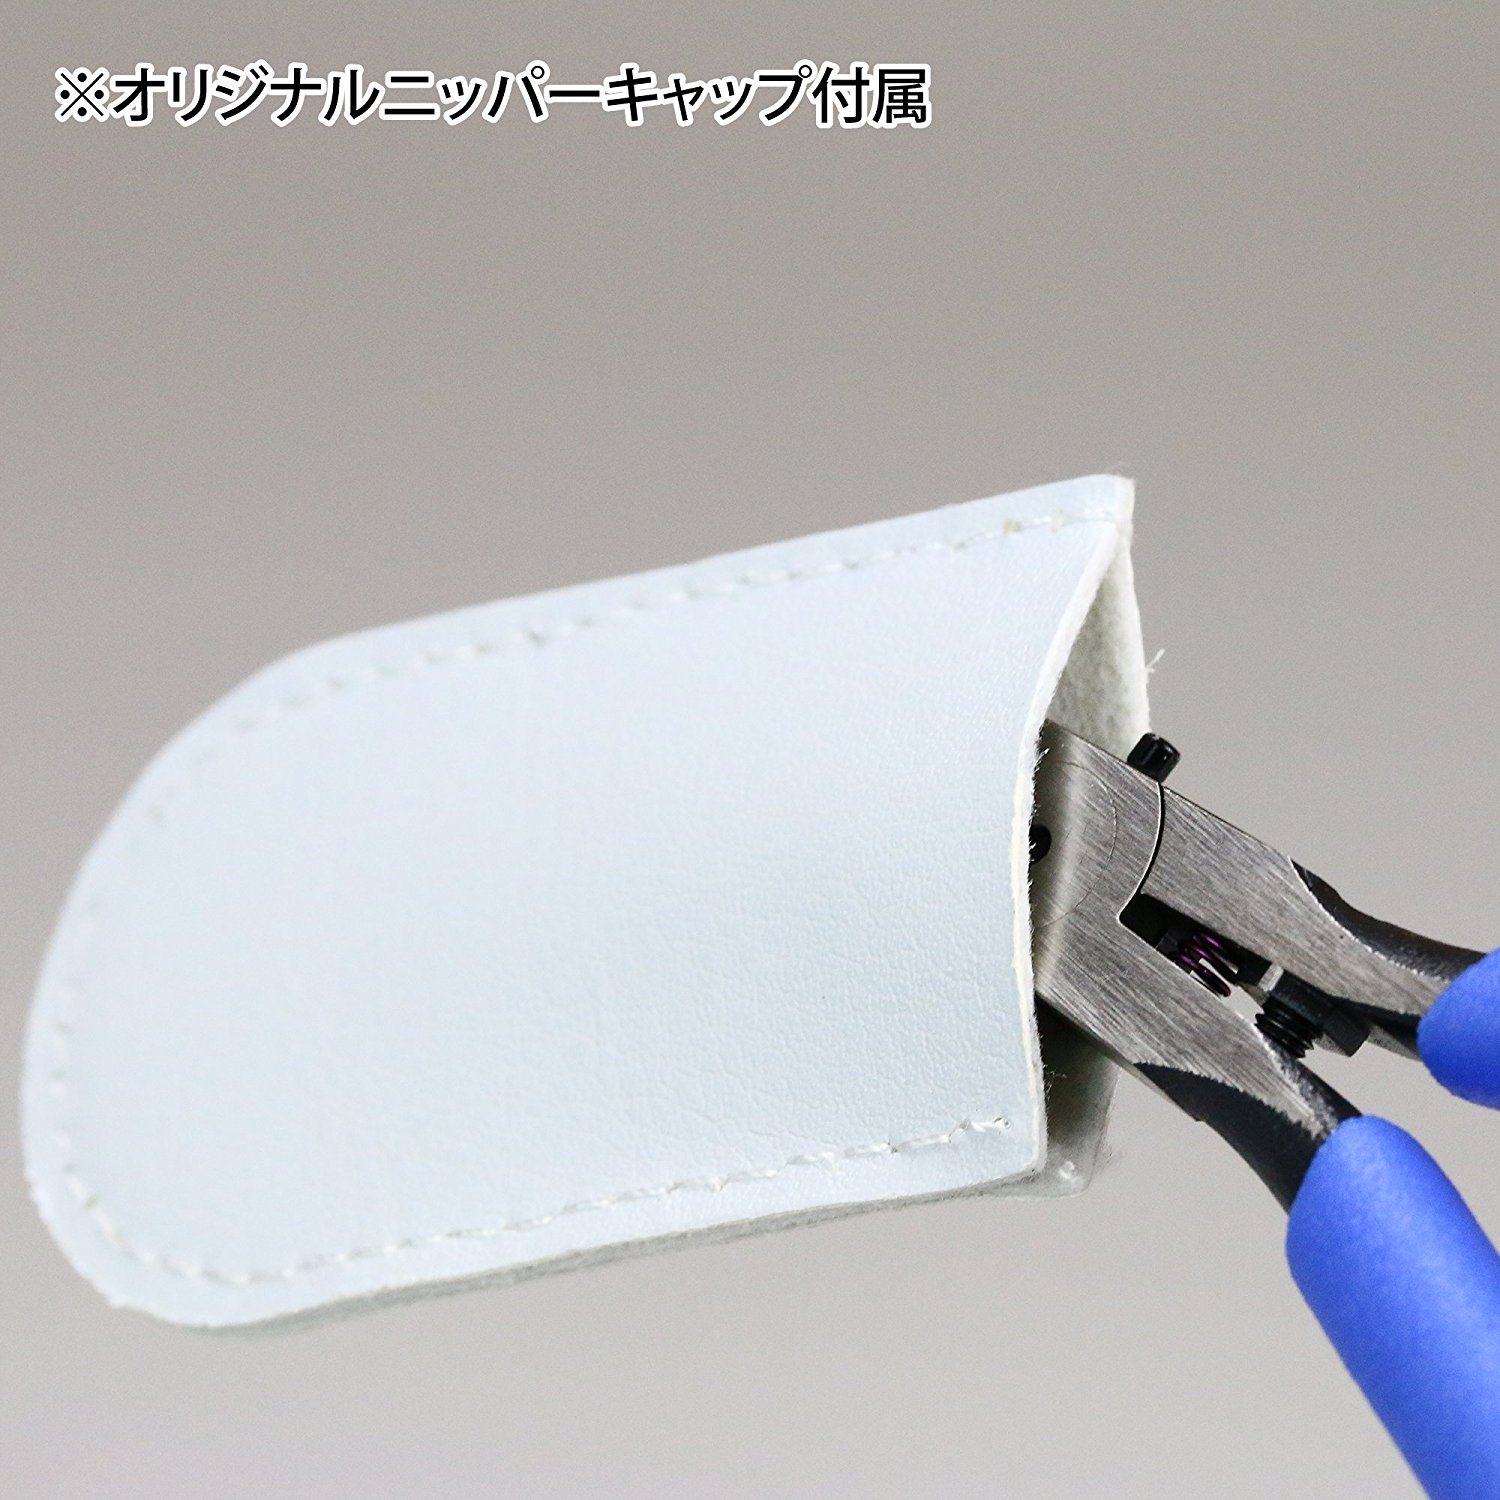 God Hand Ultimate Nipper 5.0 Plastic model Tools for GH-SPN-120 by God Hand (Image #6)